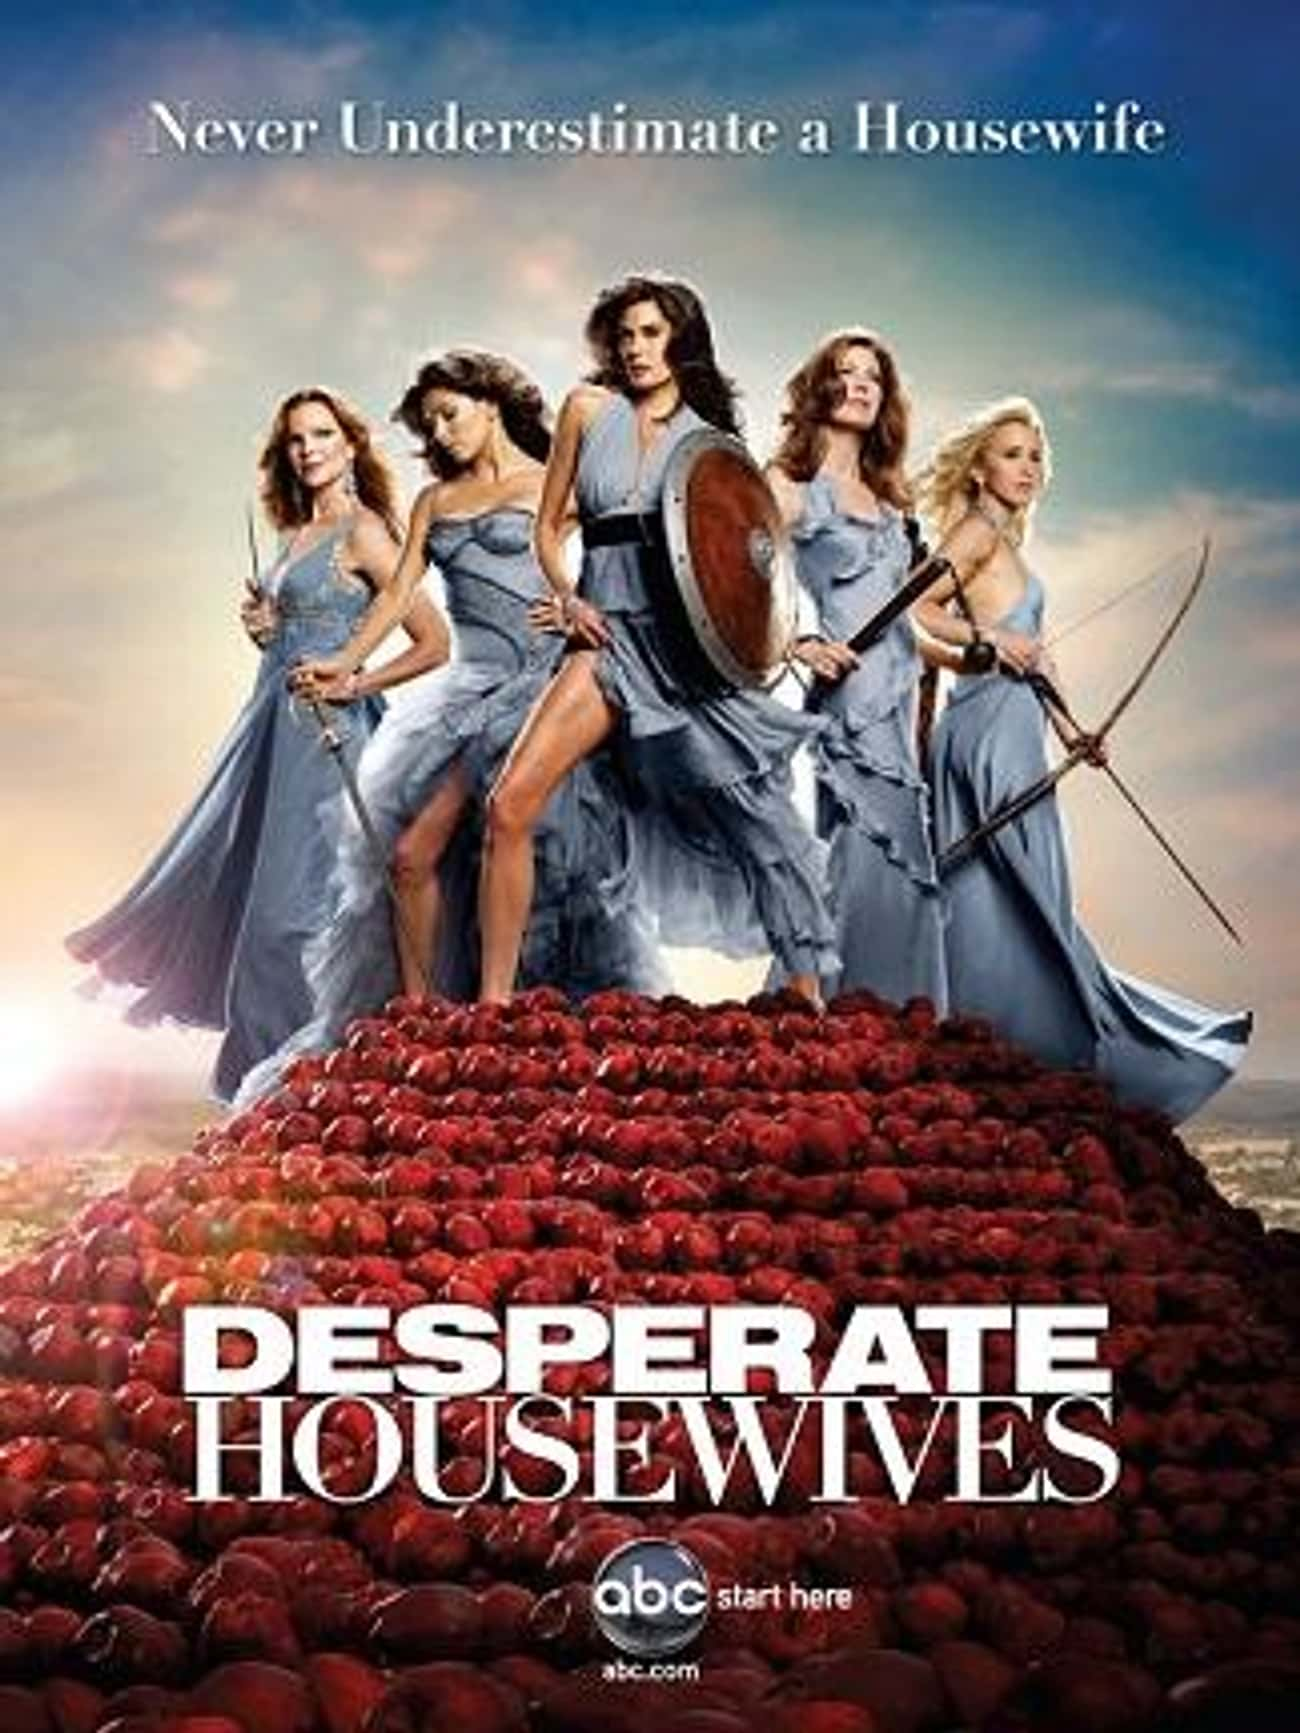 Desperate Housewives - Season  is listed (or ranked) 4 on the list The Best Seasons of Desperate Housewives